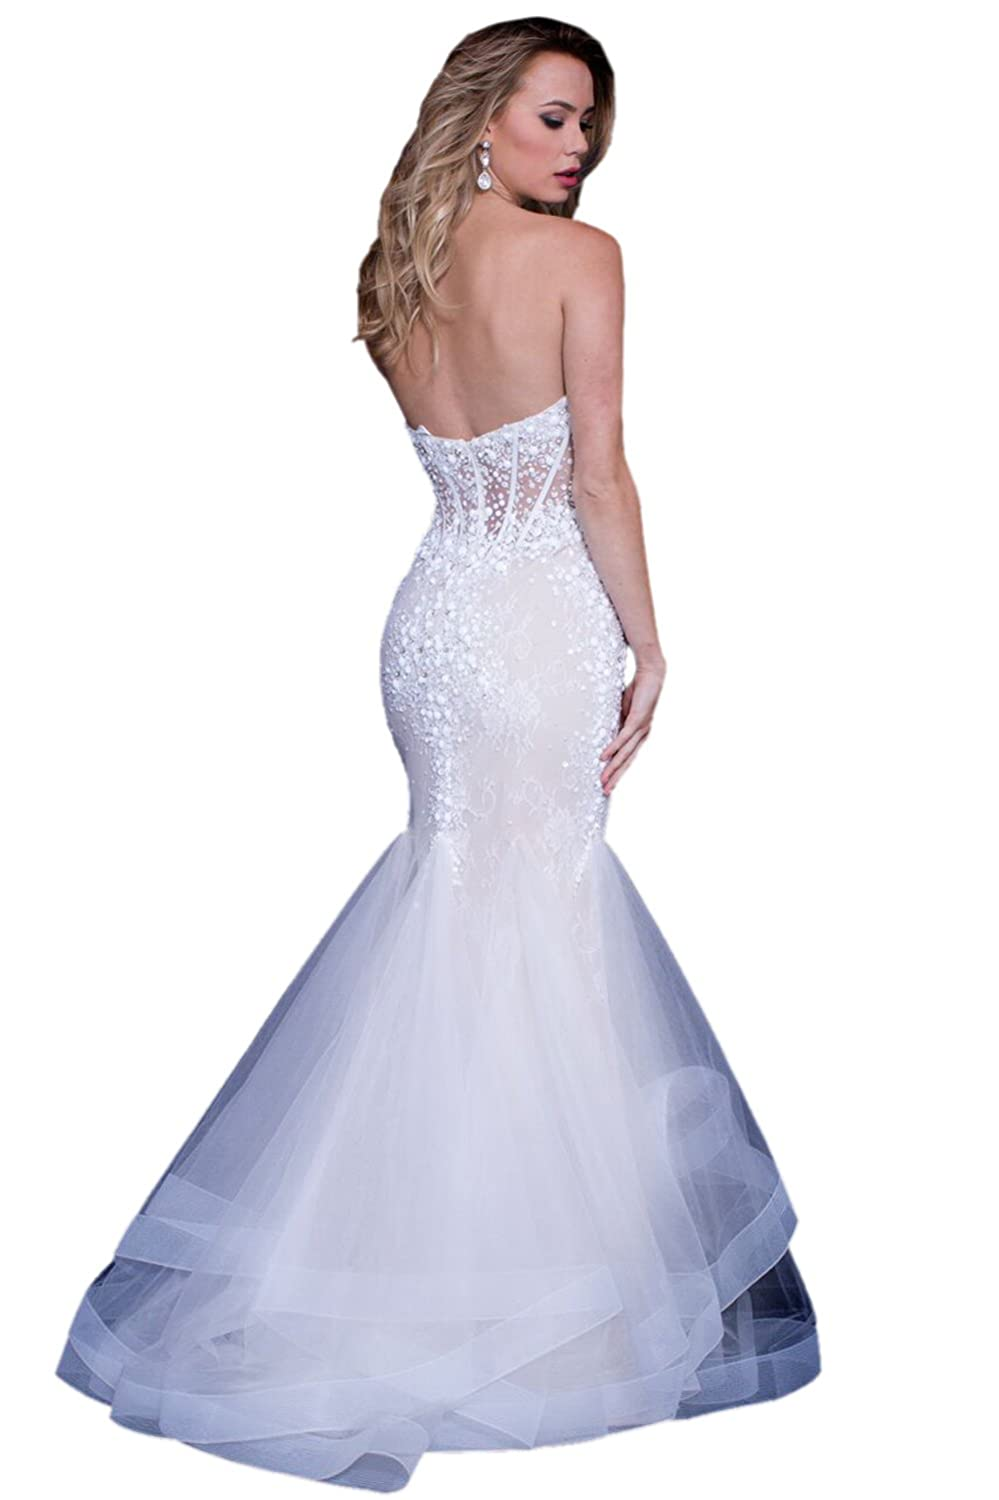 Jovani Prom 2018 Dress Evening Gown Authentic 57428 Long Off White at Amazon Womens Clothing store: